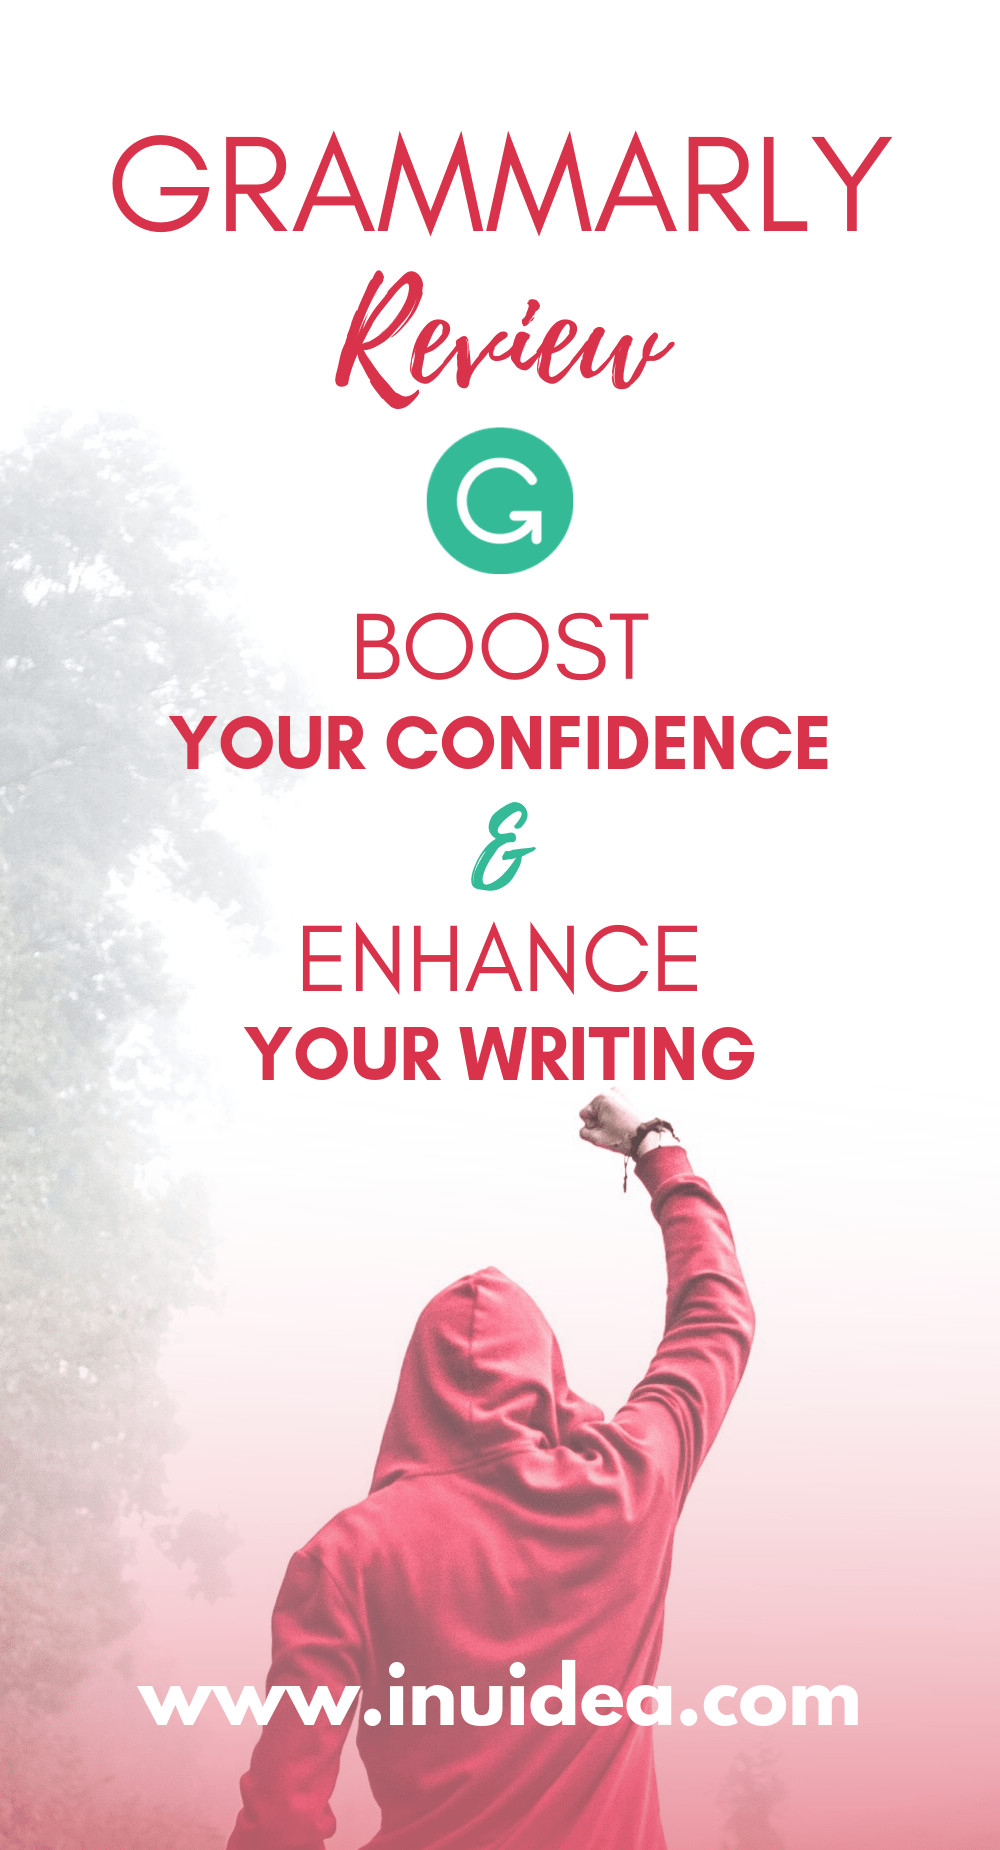 Proofreading Software Grammarly Price Pictures